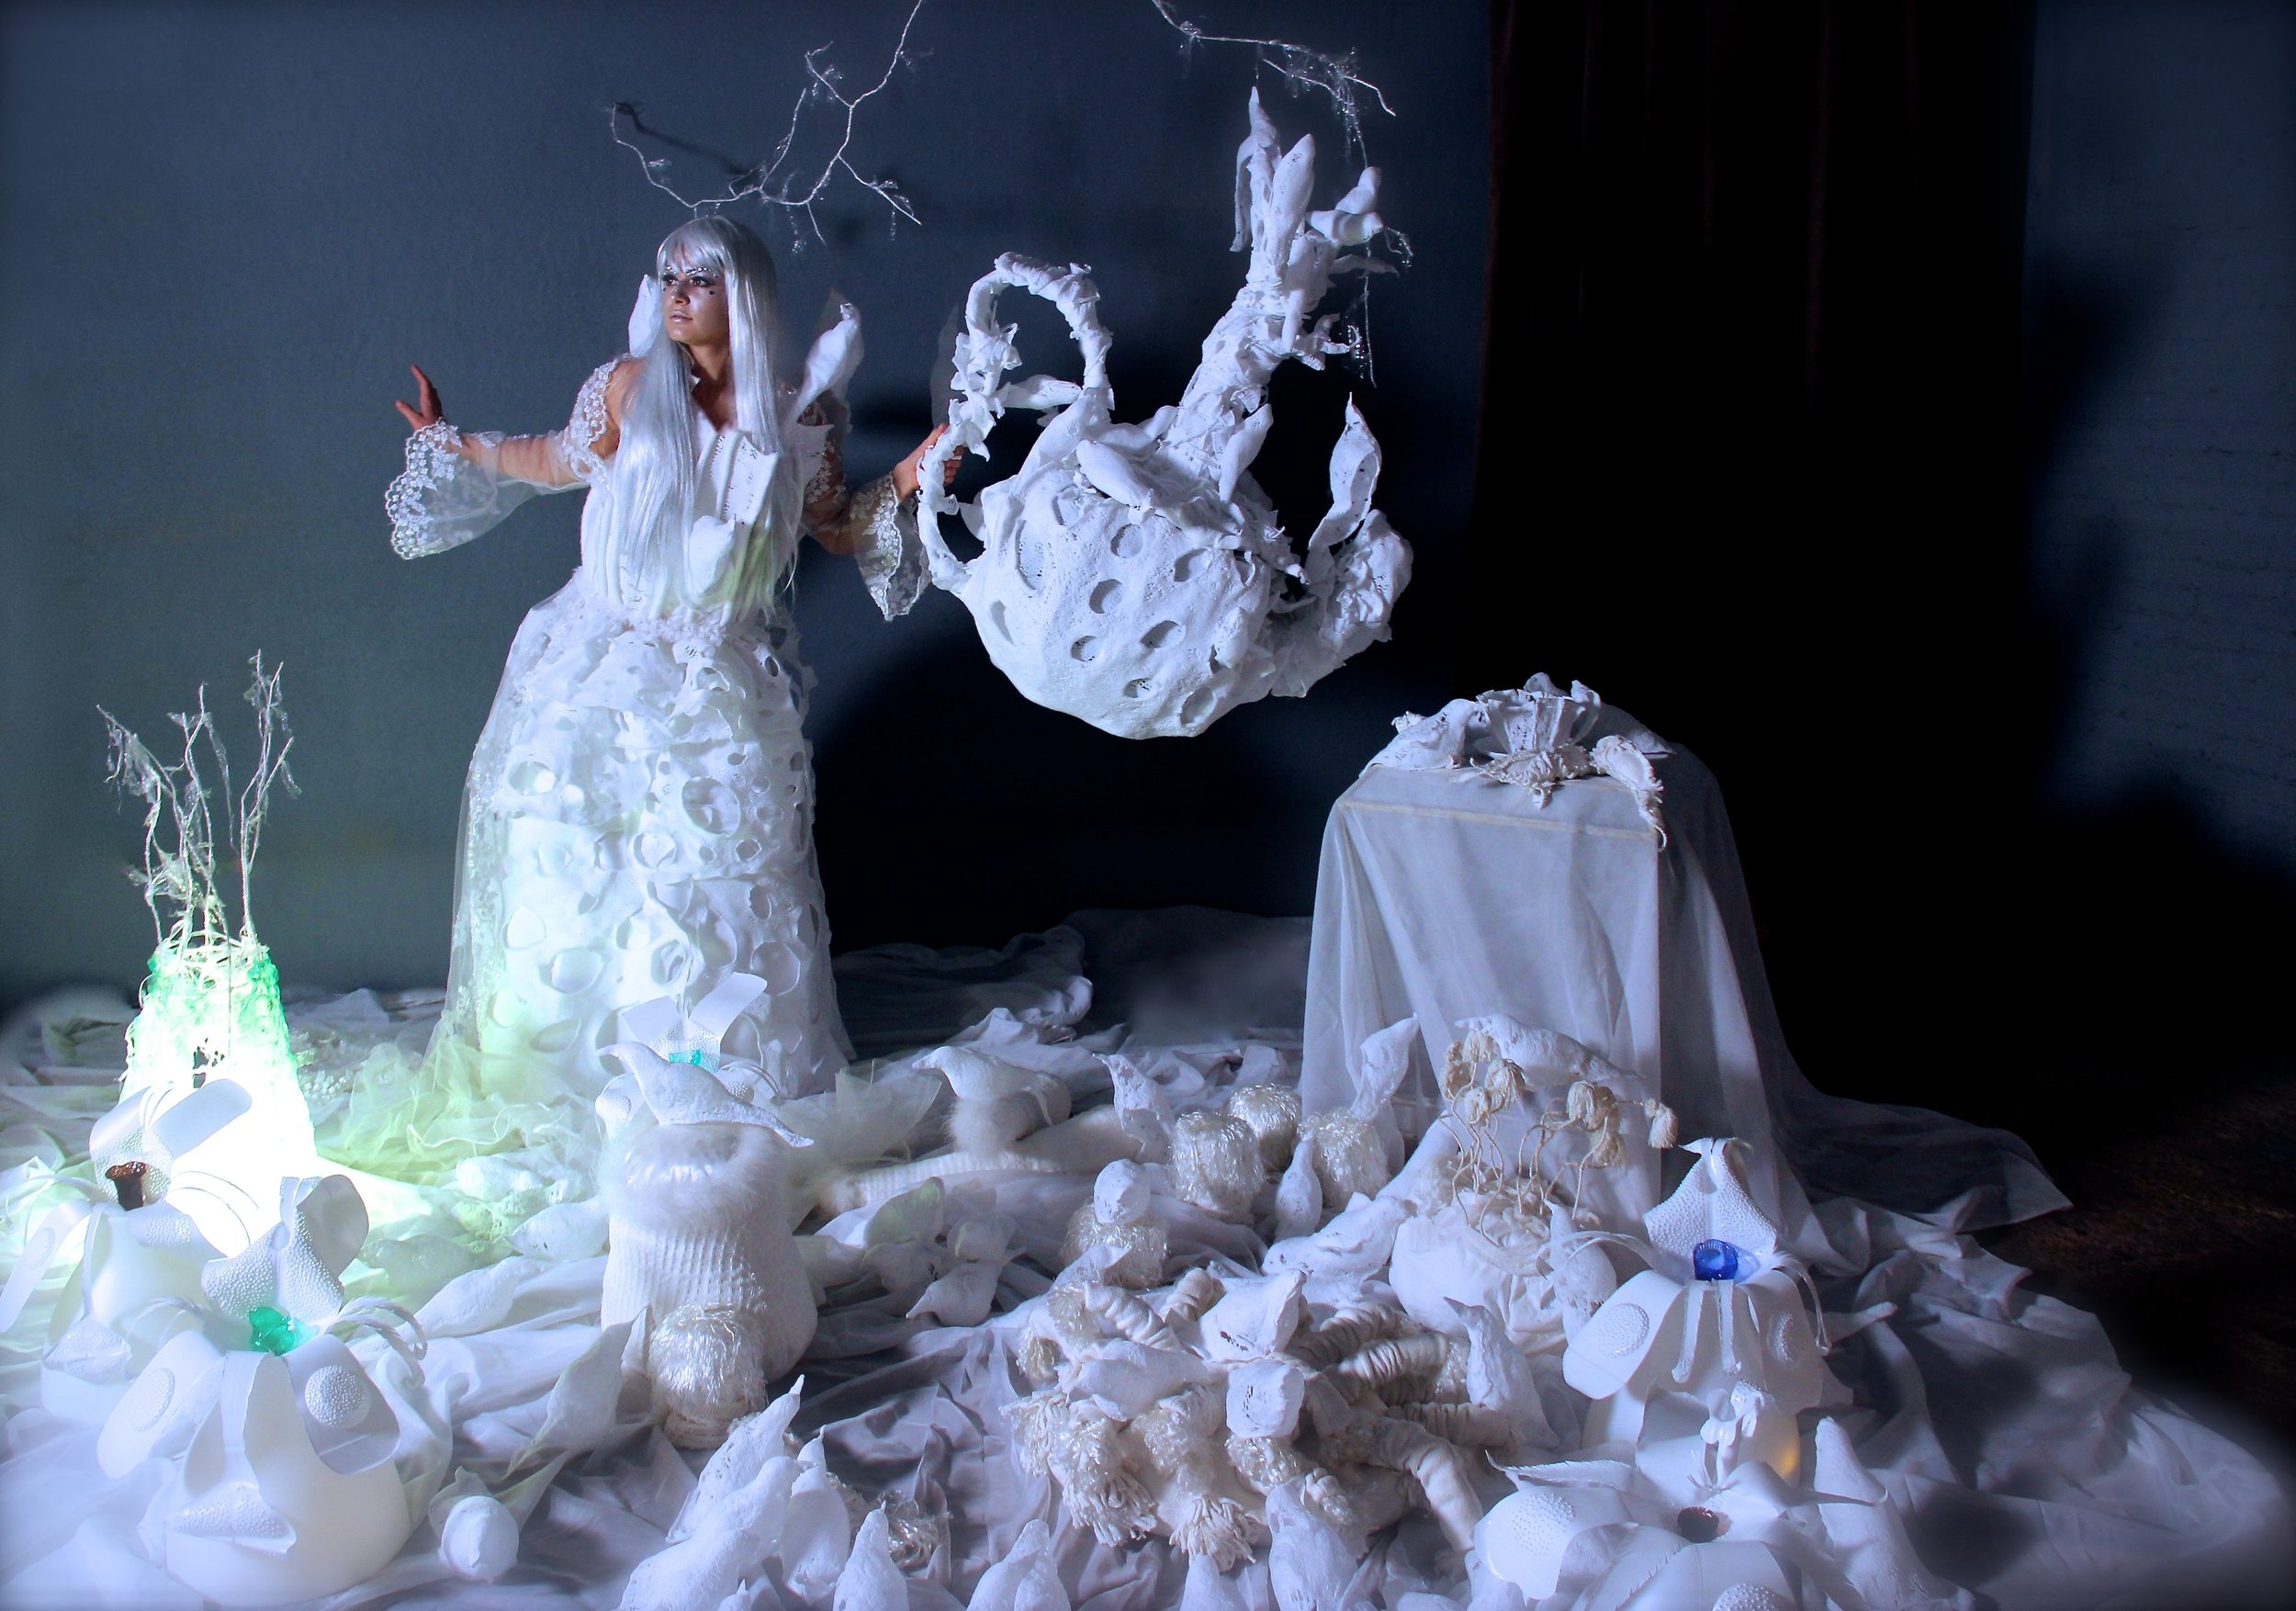 Birds of a Feather dress and Falling From the Nest teapot installation by Leisa Rich